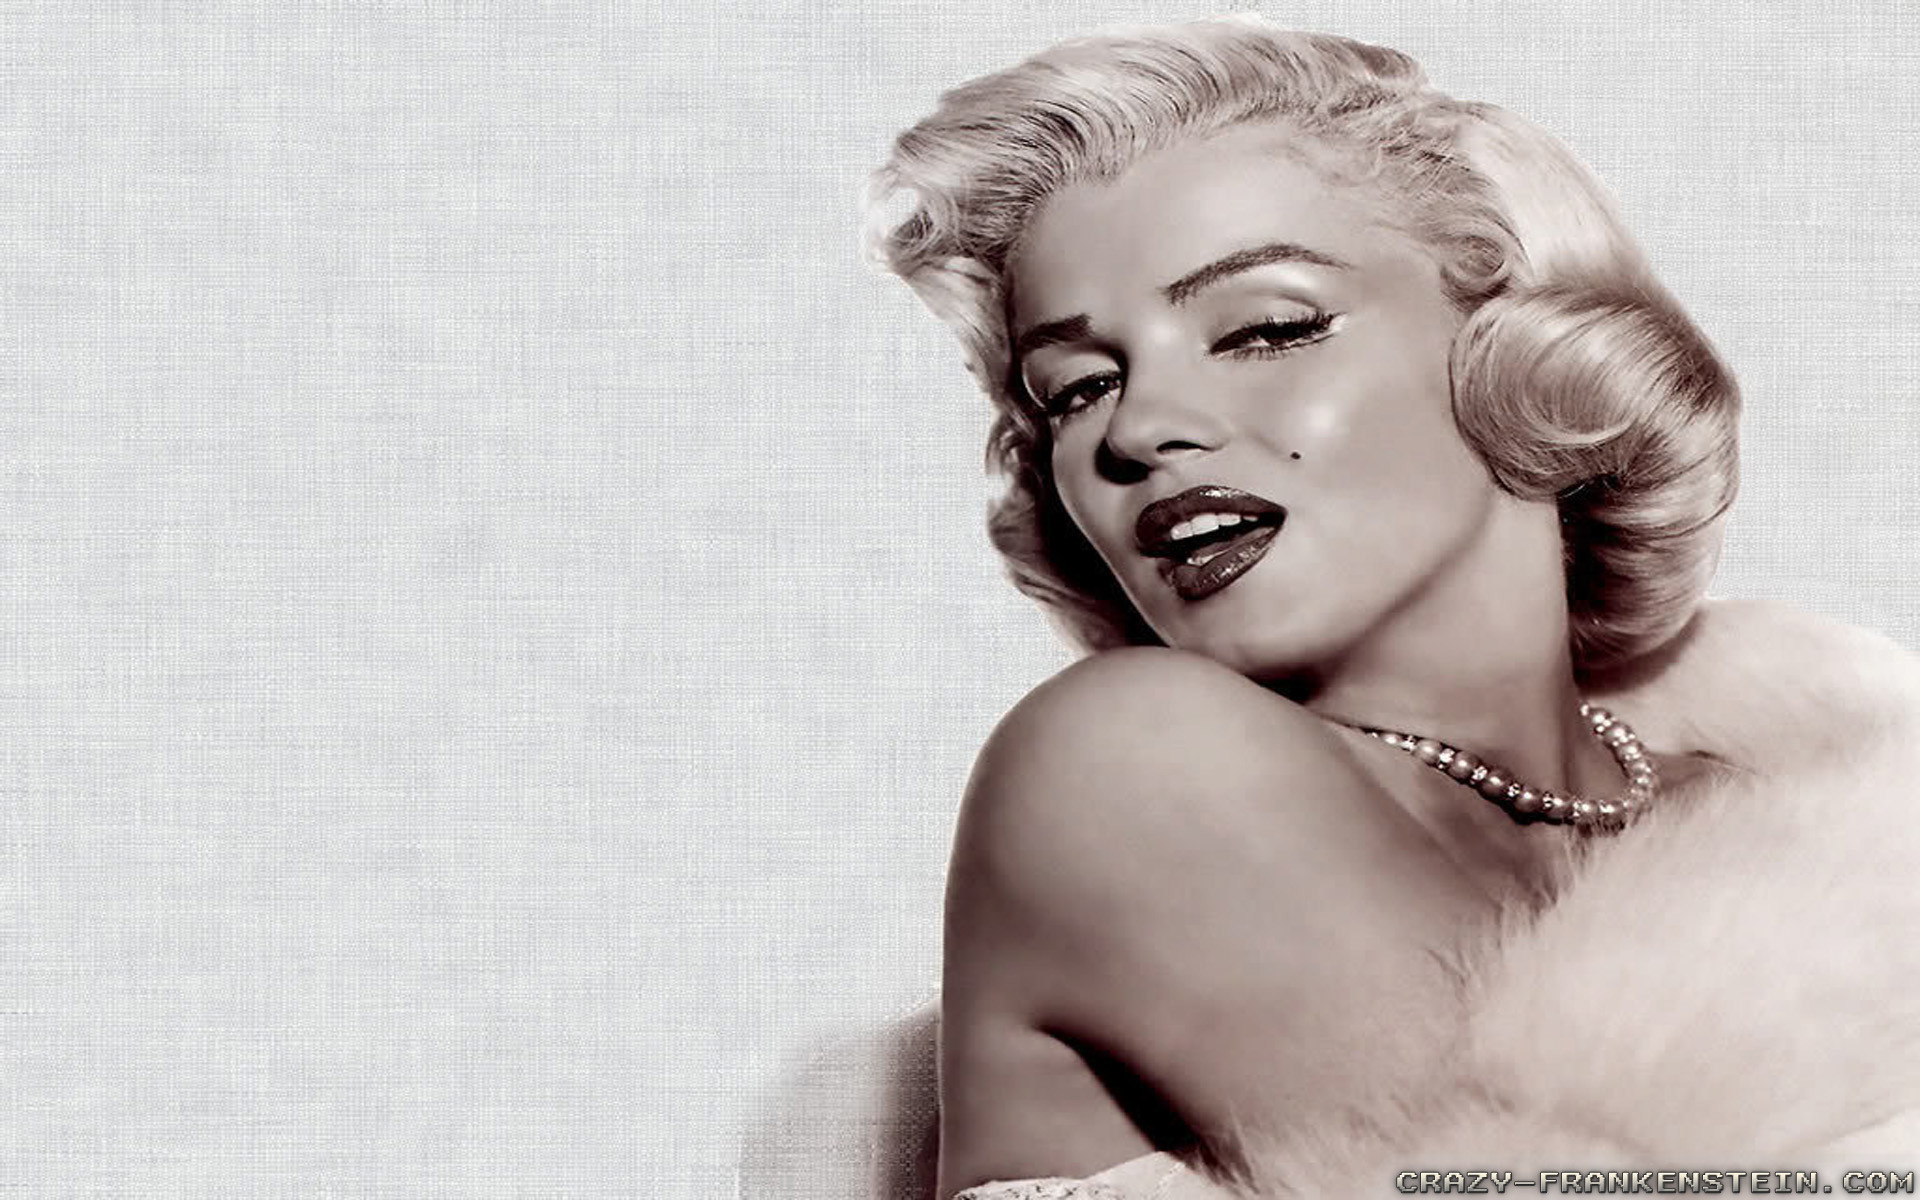 1920x1200 Videos · Home > Wallpapers > Female celebrity wallpapers · Marilyn Monroe  ...